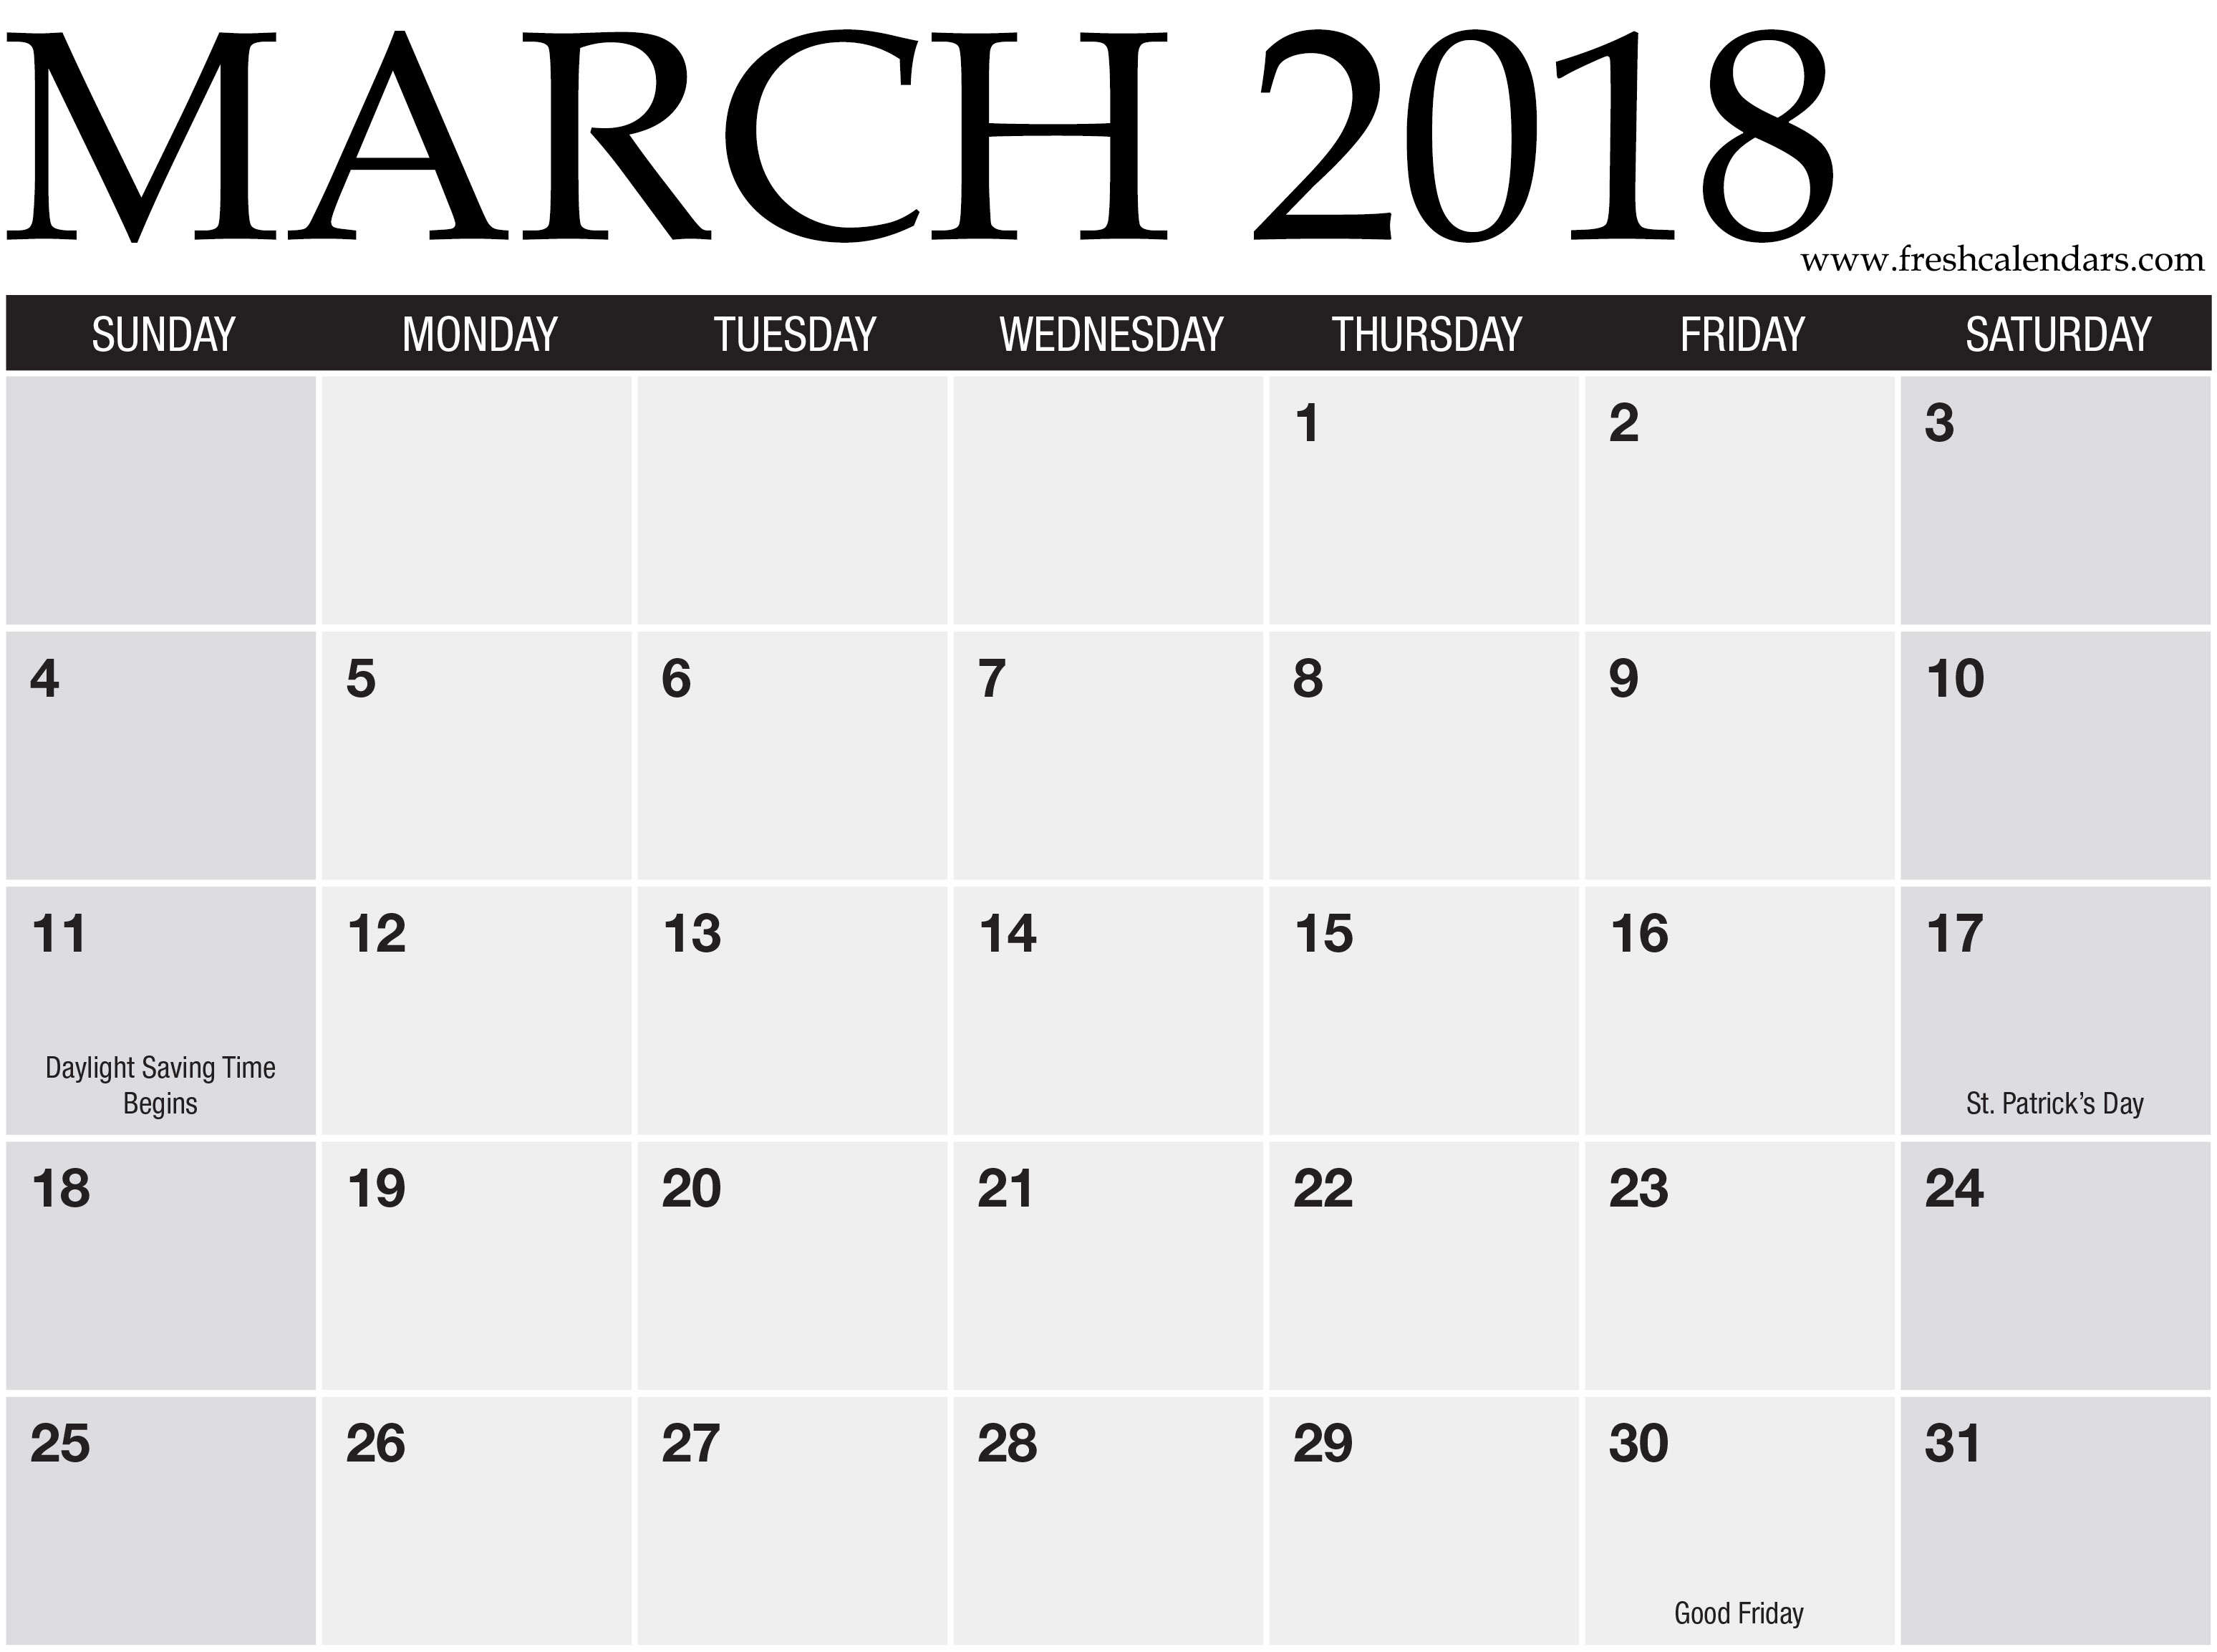 March 2018 Calendar Printable Fresh Calendars